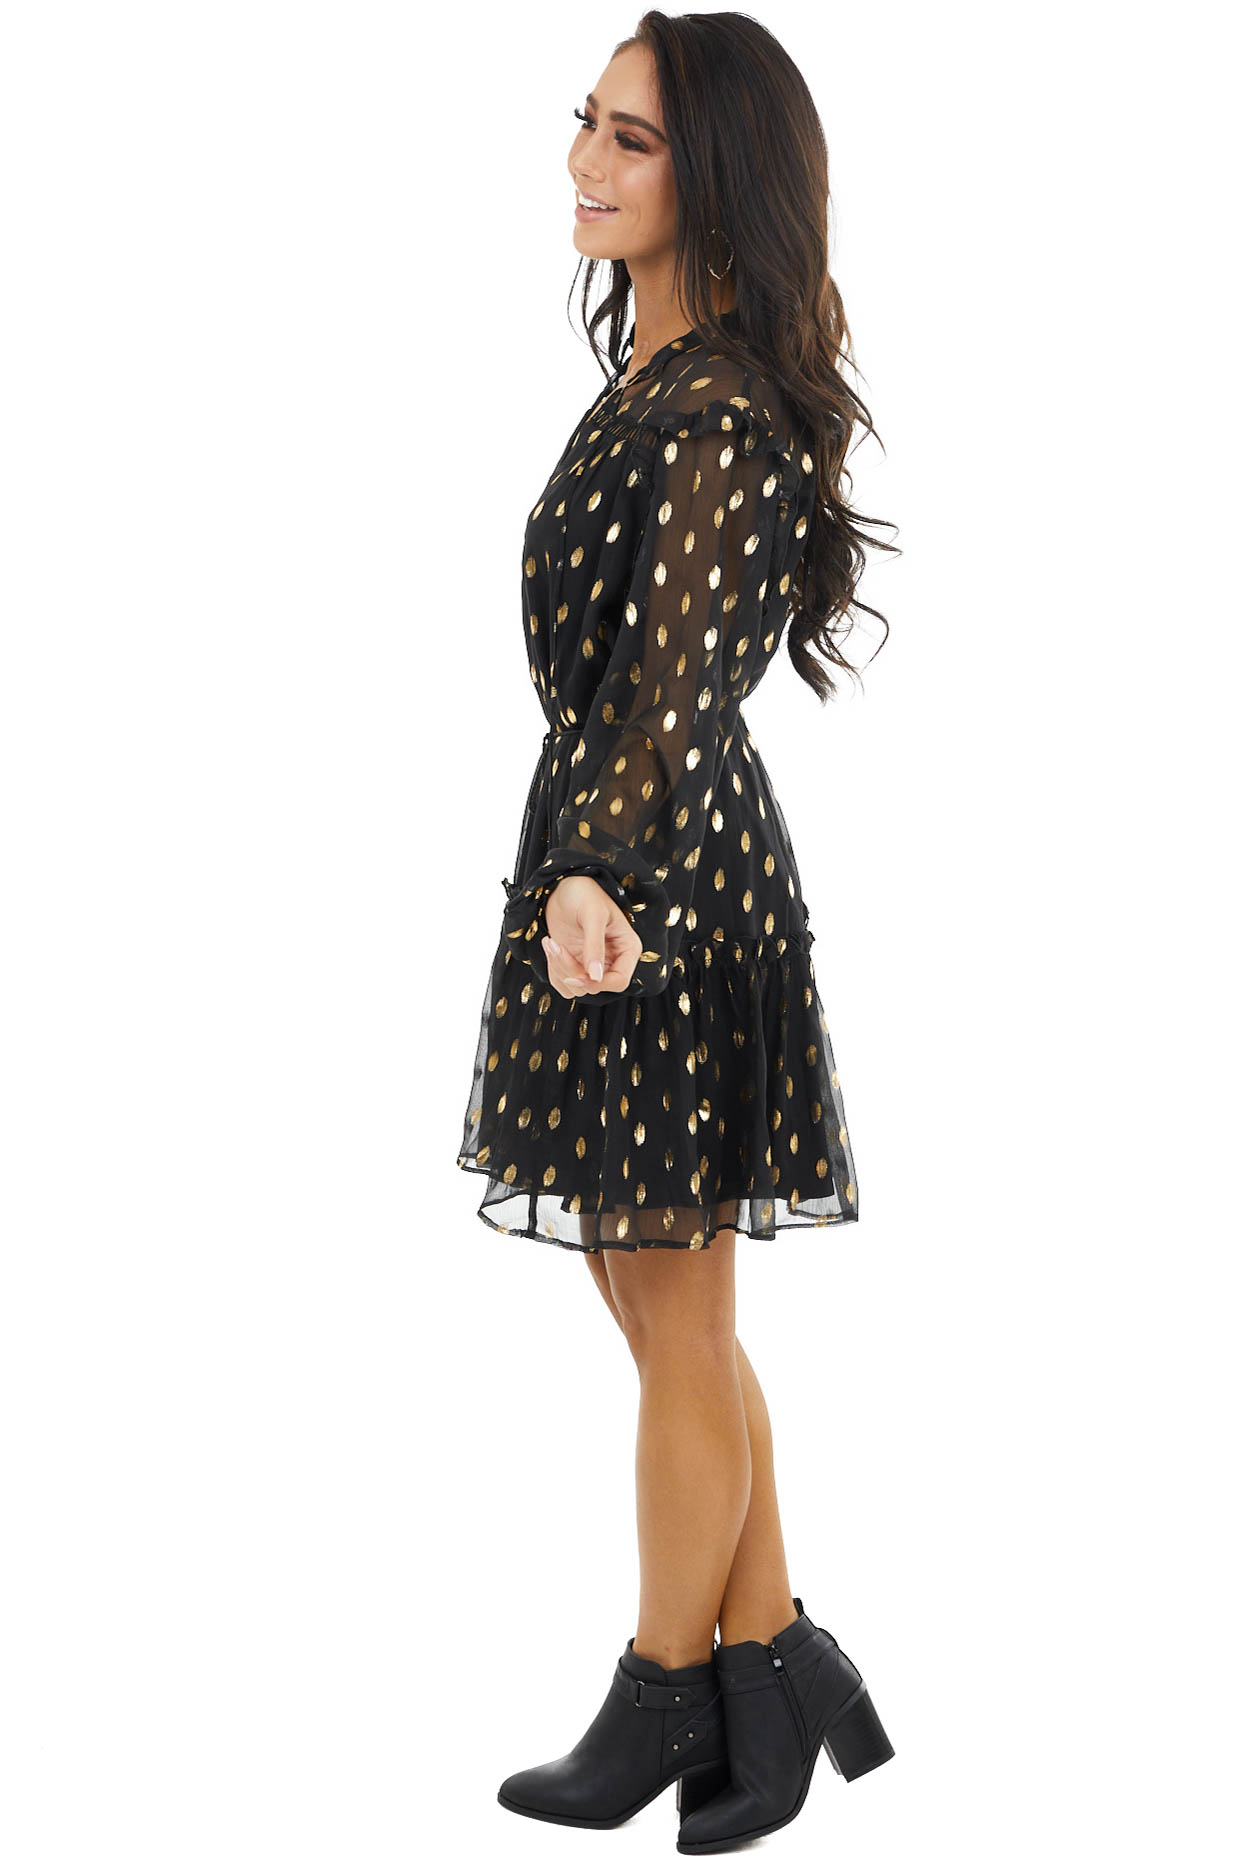 Black Ruffle Long Sleeve Dress with Gold Metallic Detail